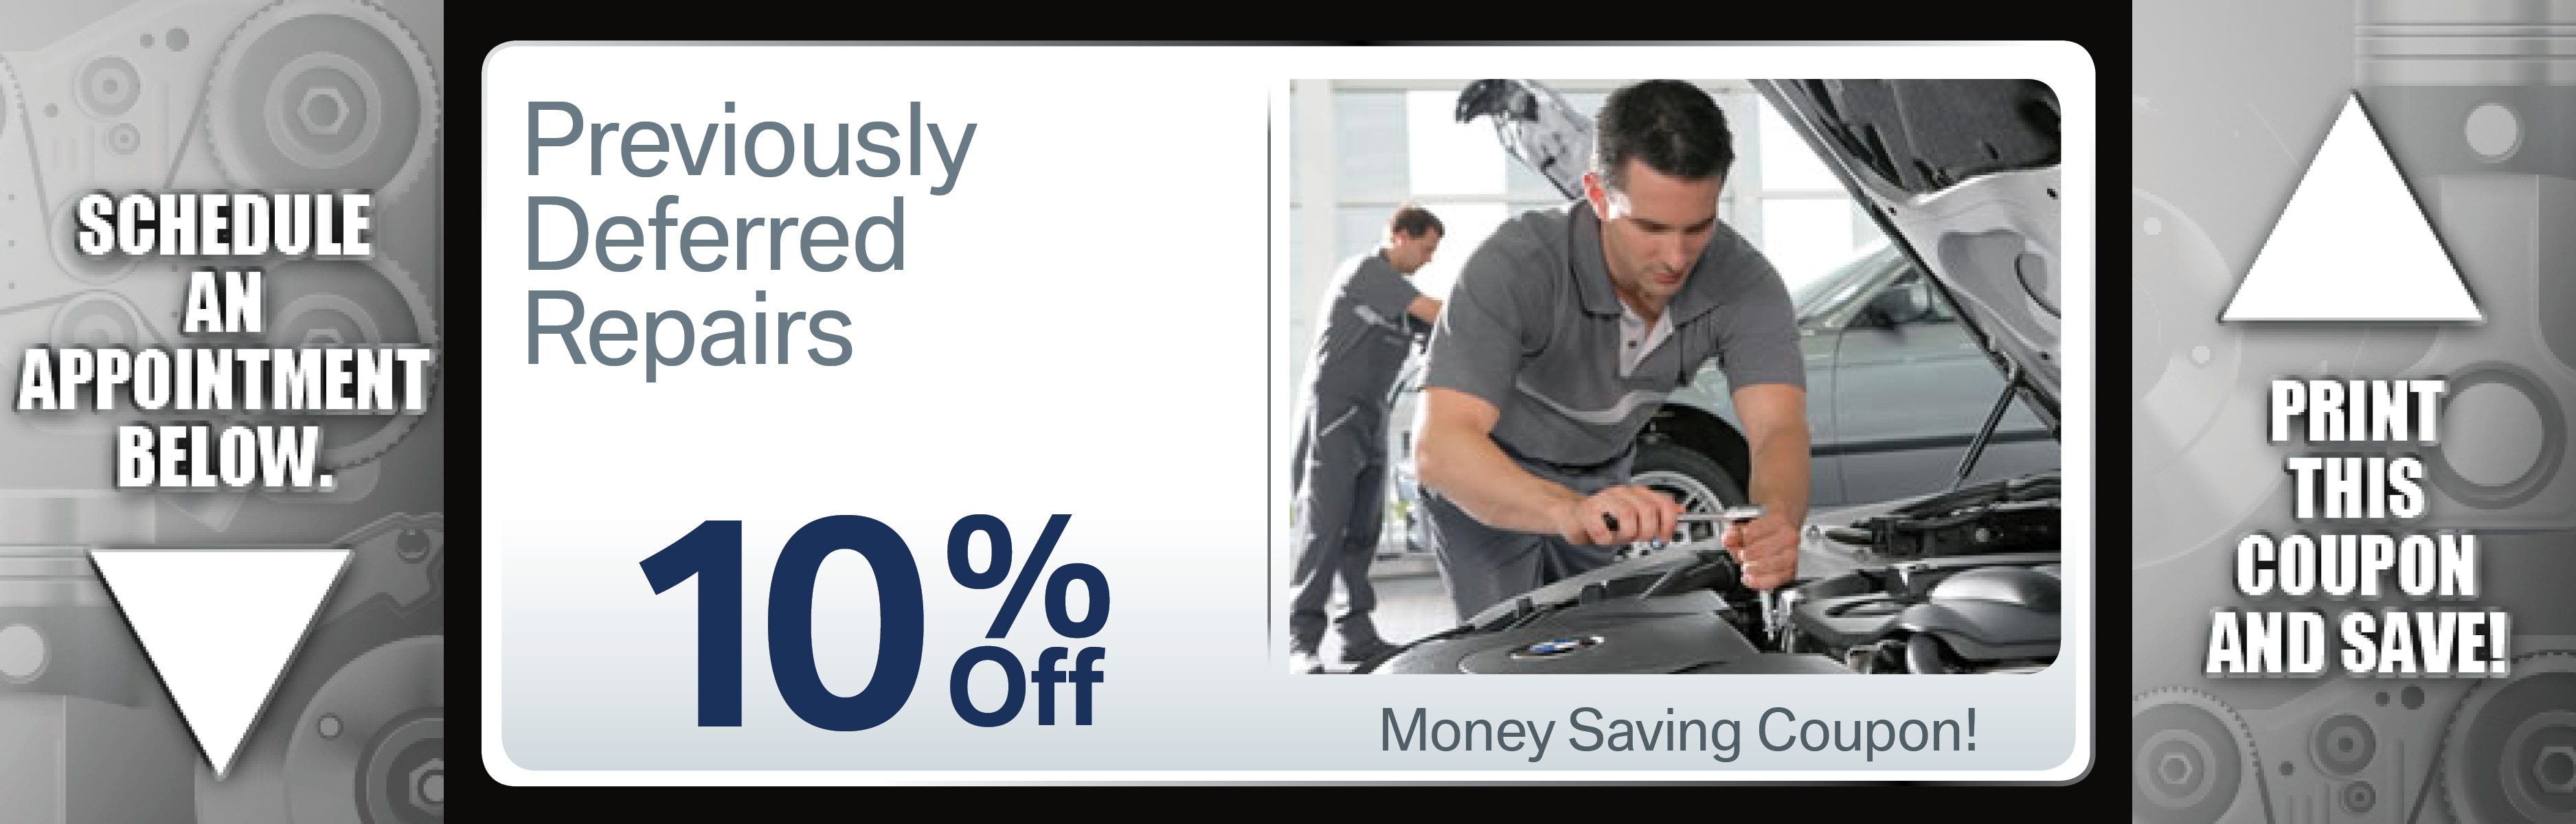 Previously Deferred Repairs - Coupon